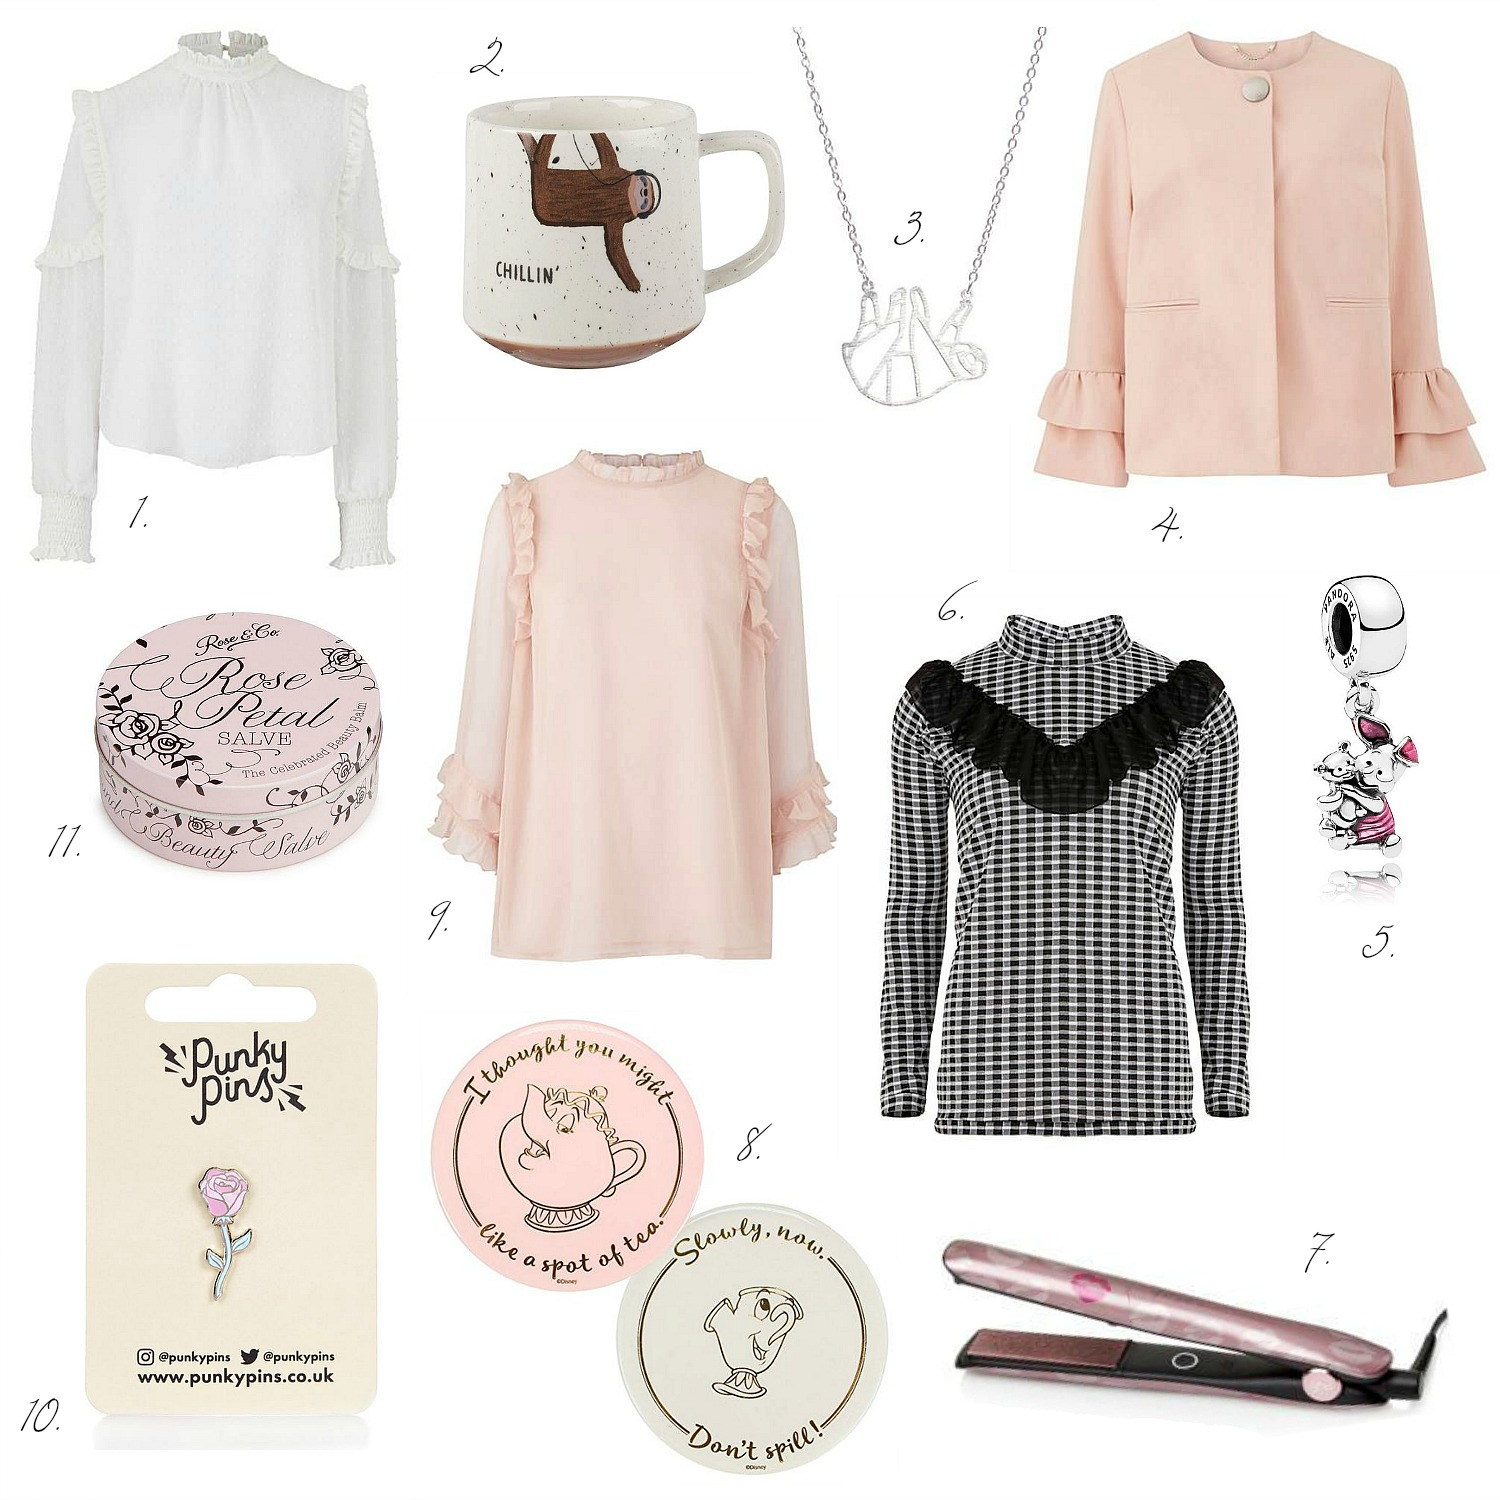 Disney fashion beauty blog wishlist